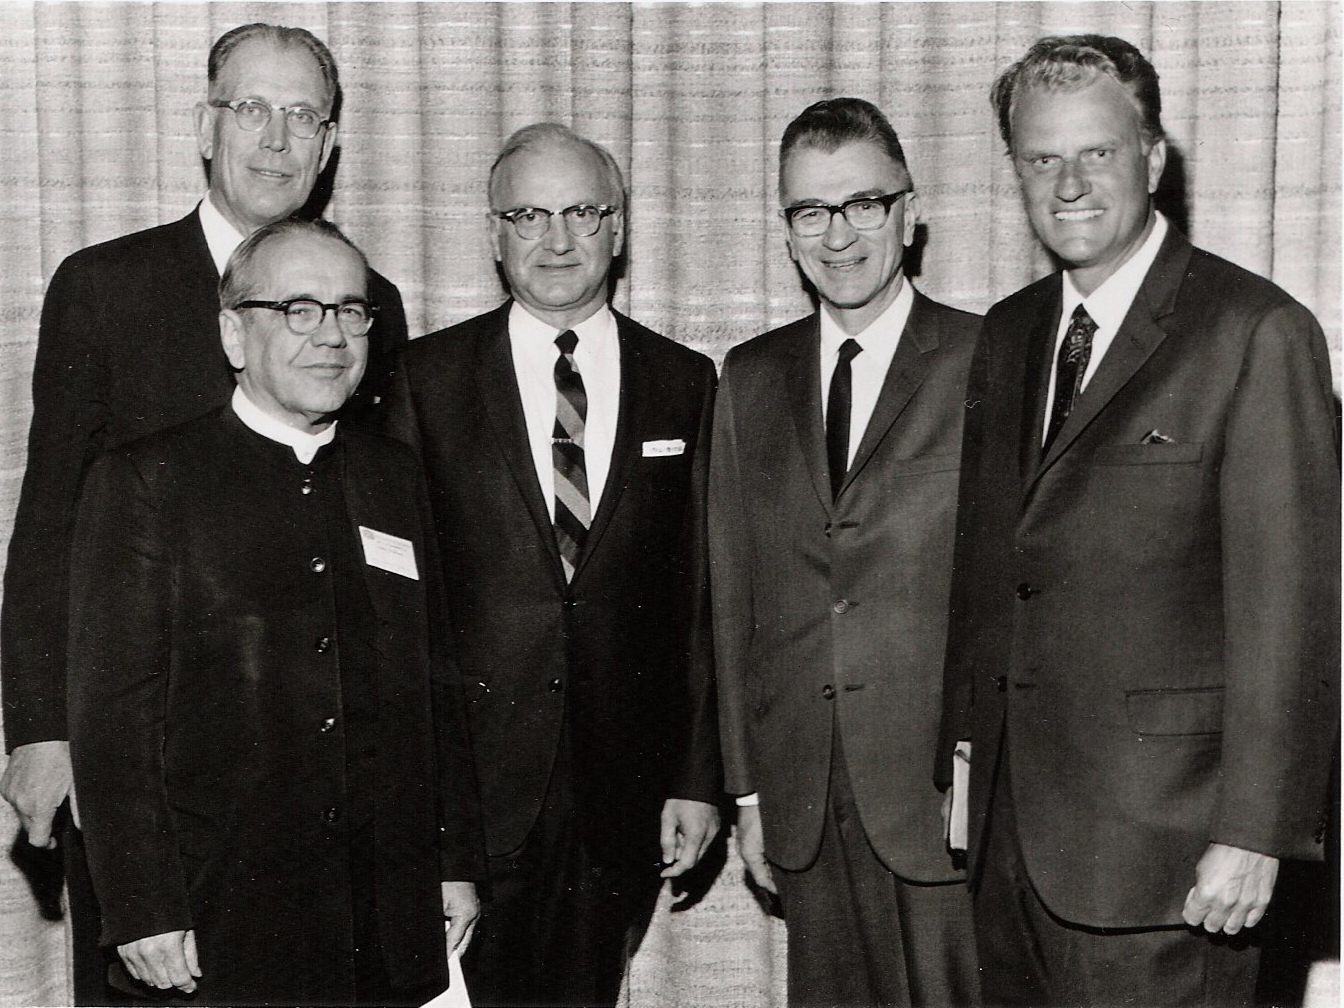 Five white men pose for a photograph